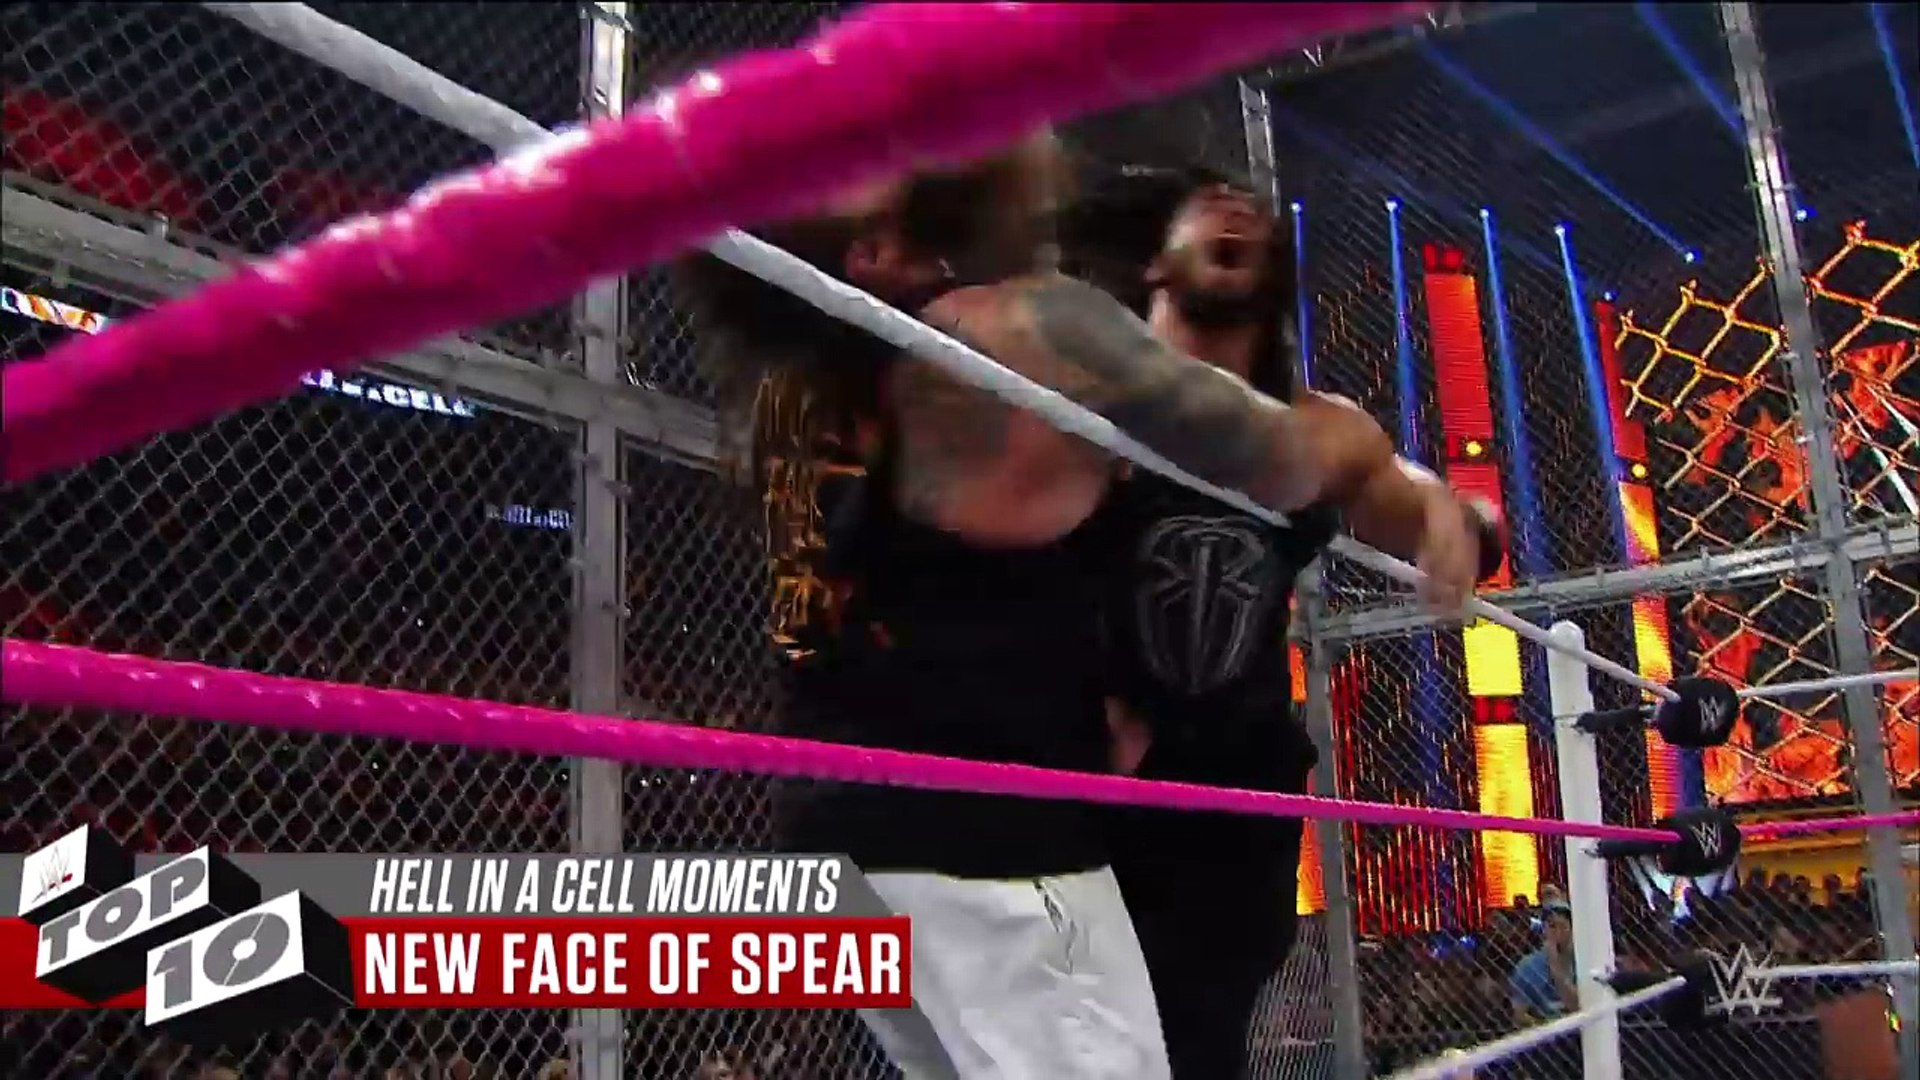 Hell-ish moments in Hell in a Cell: WWE Top 10, Oct. 22, 2016